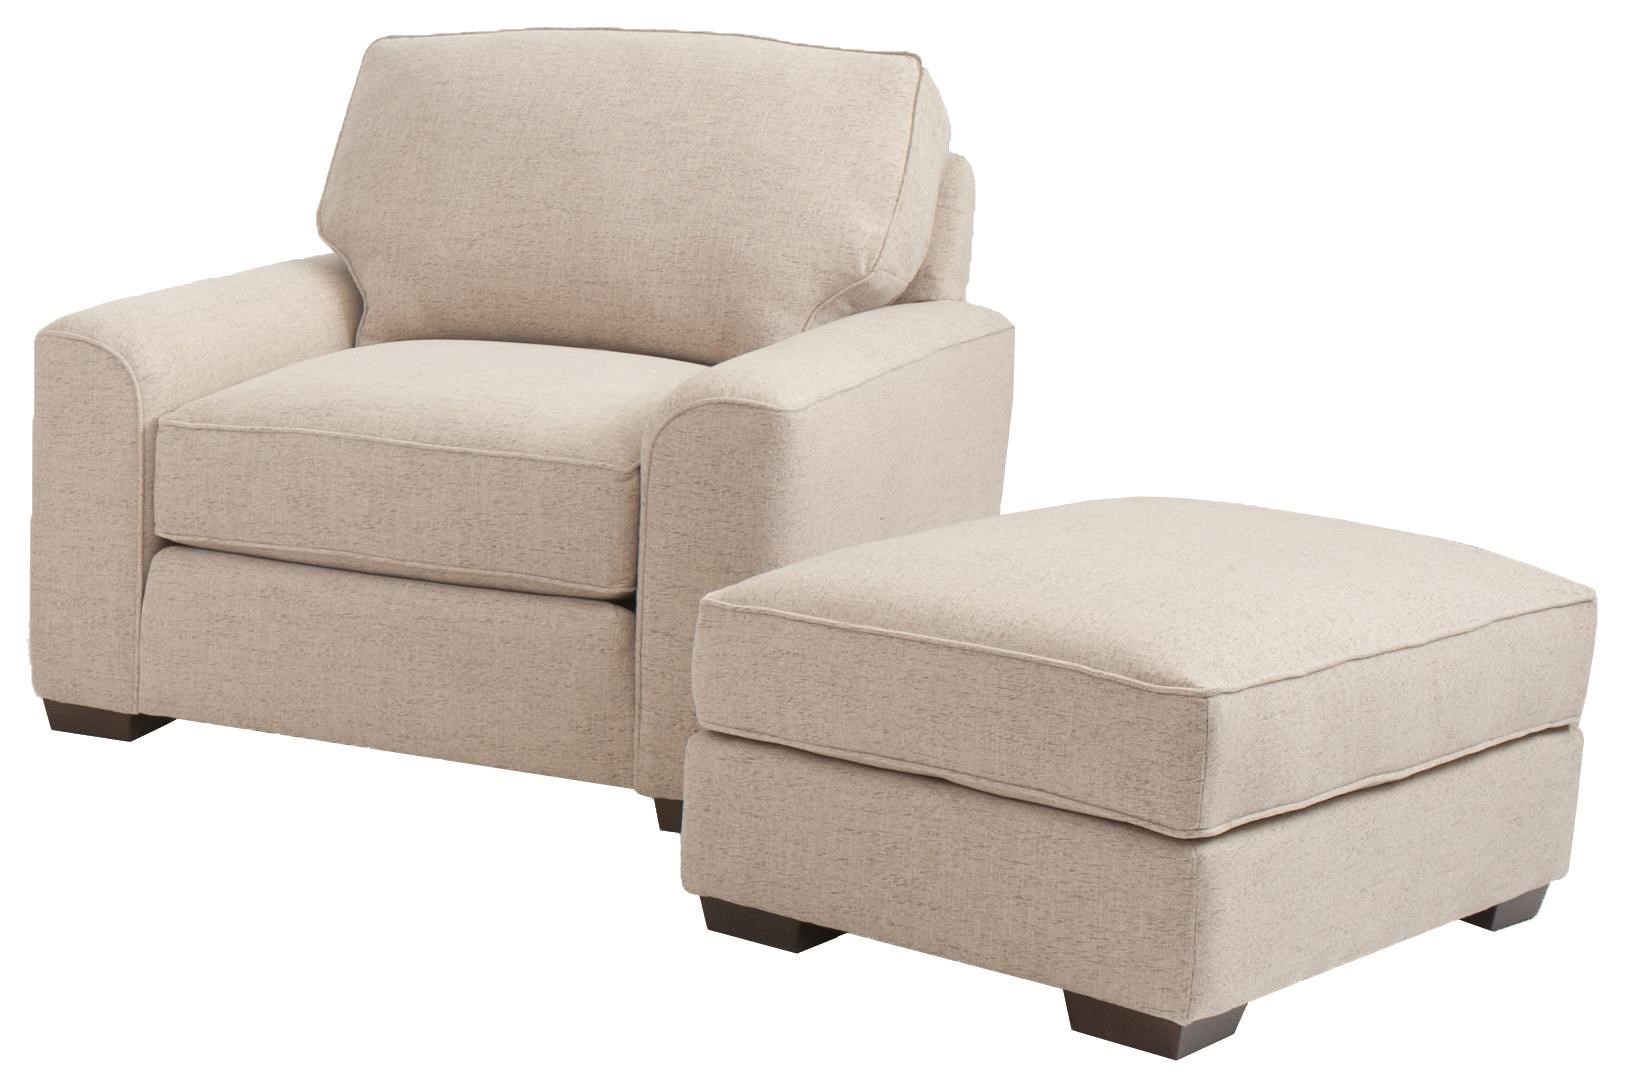 Smith Brothers Build Your Own (8000 Series) Retro Styled Chair And Ottoman  Set